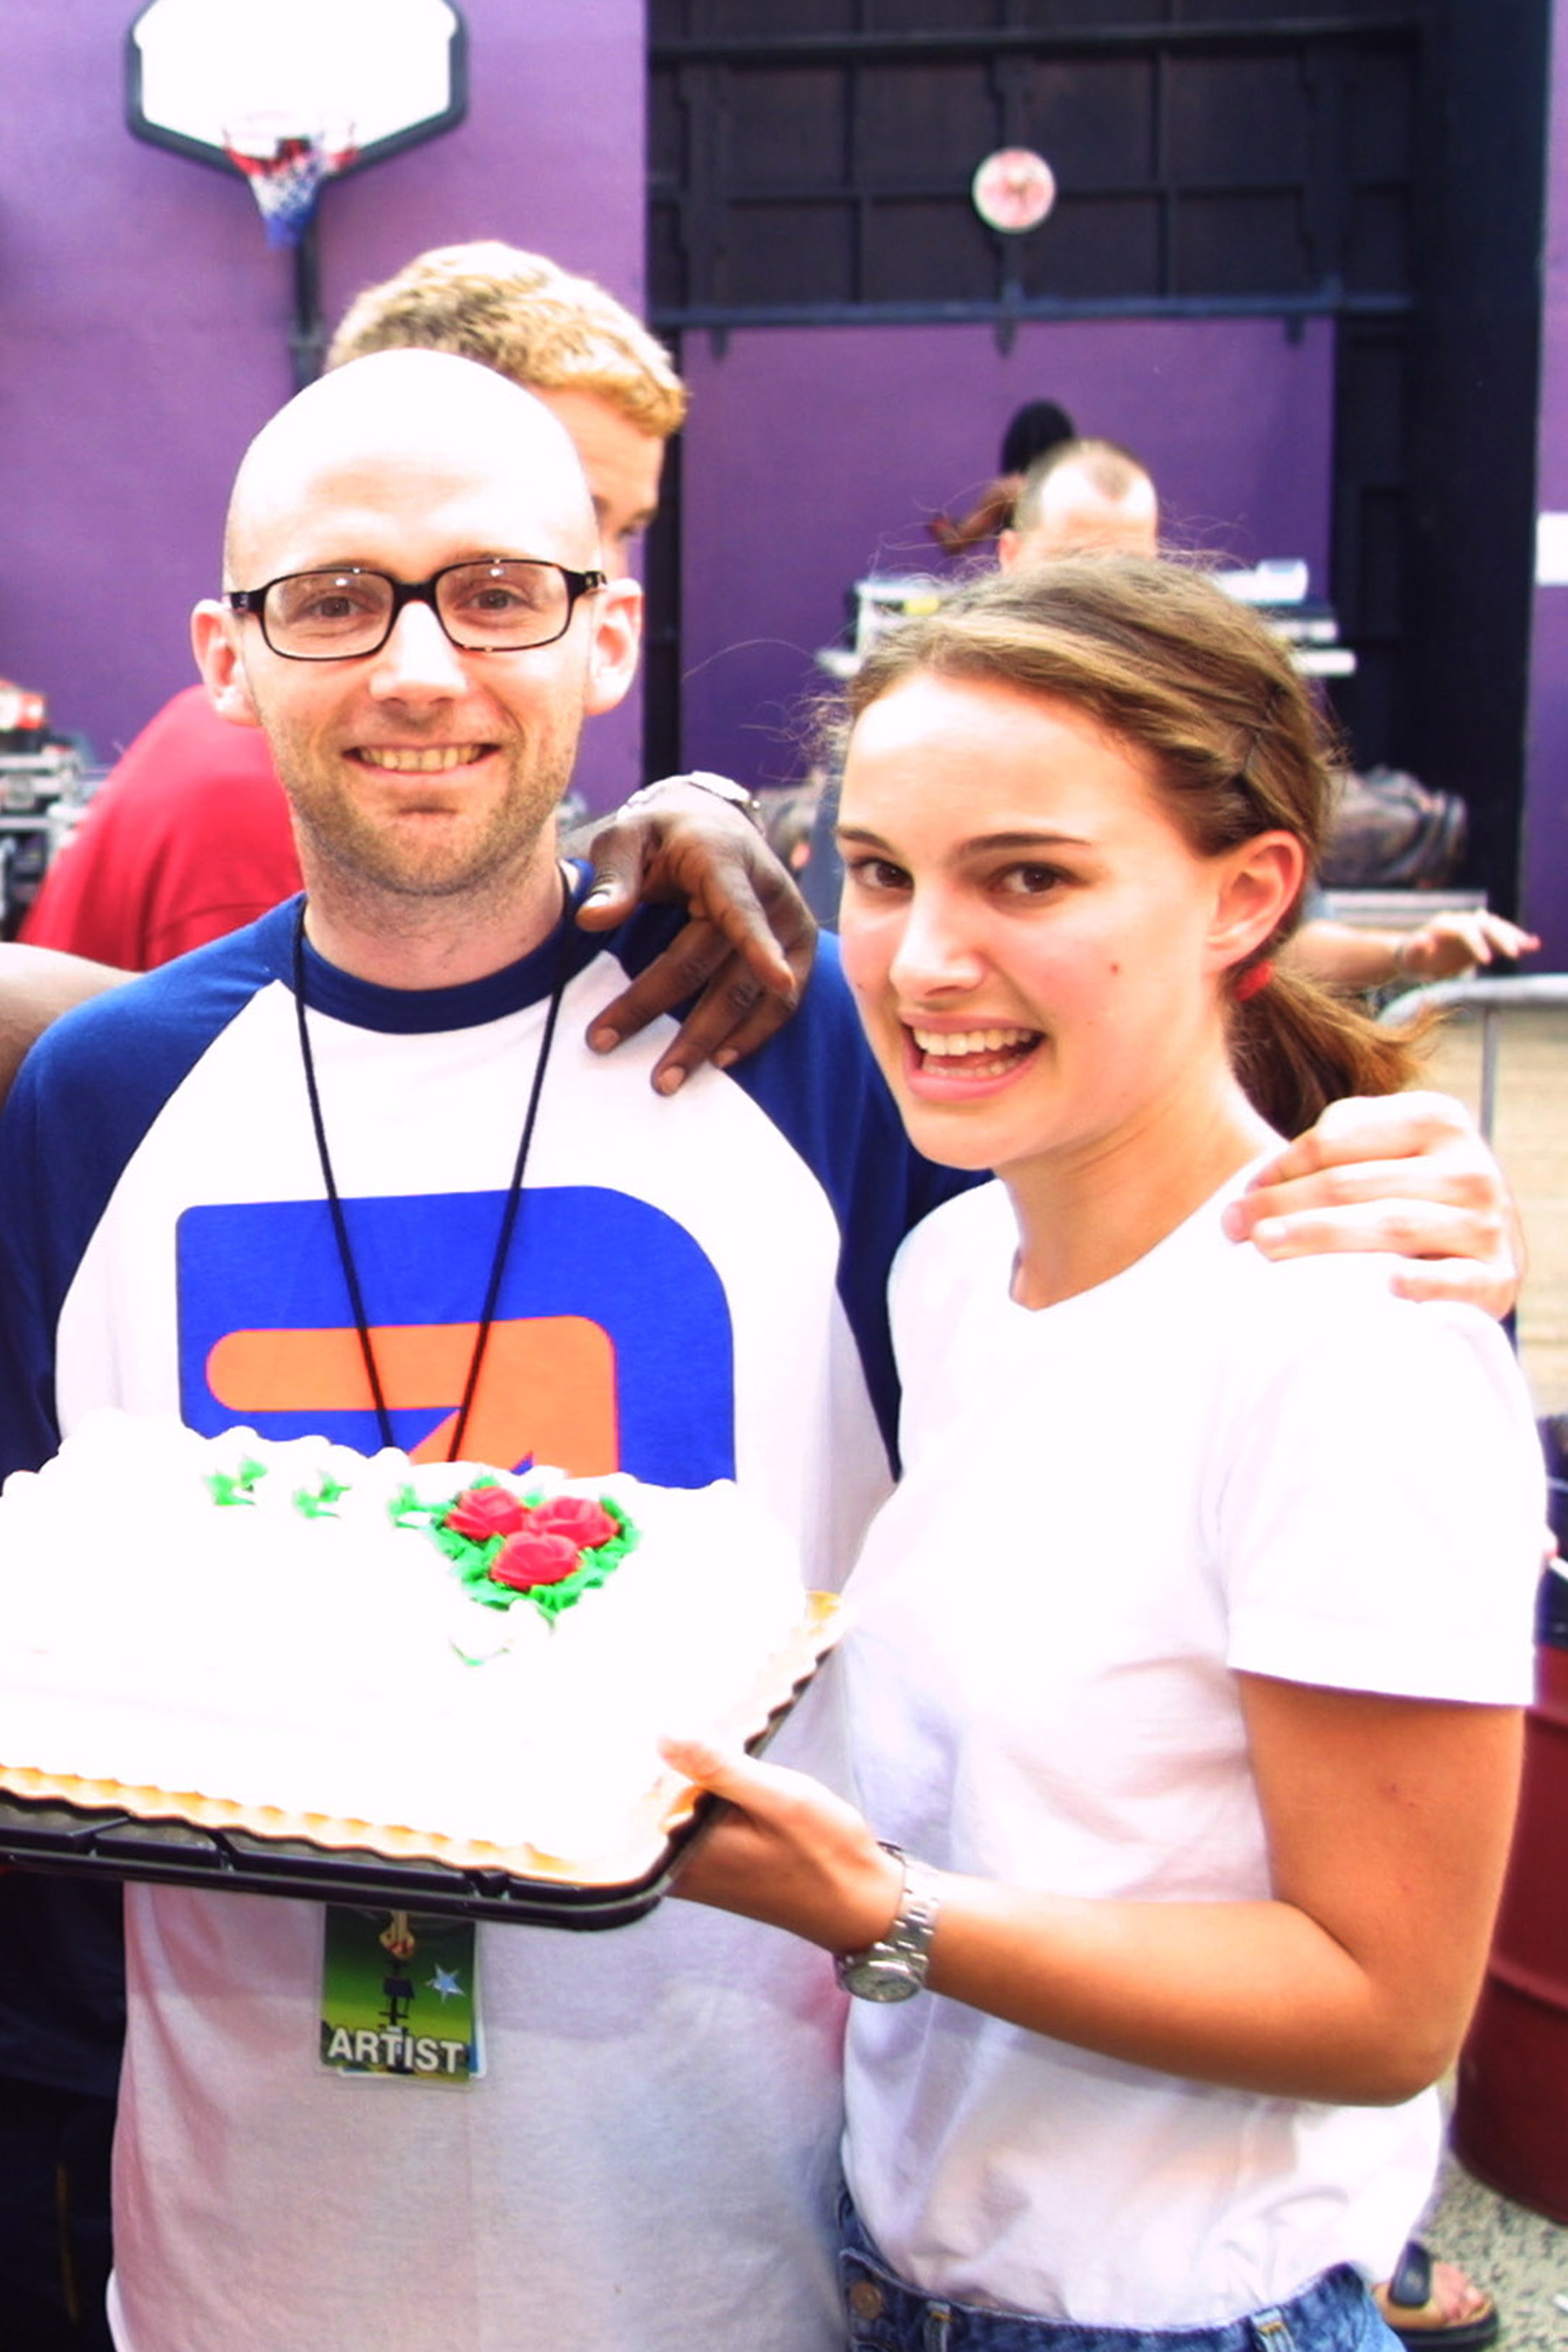 Did Natalie Portman and Moby Hook Up?